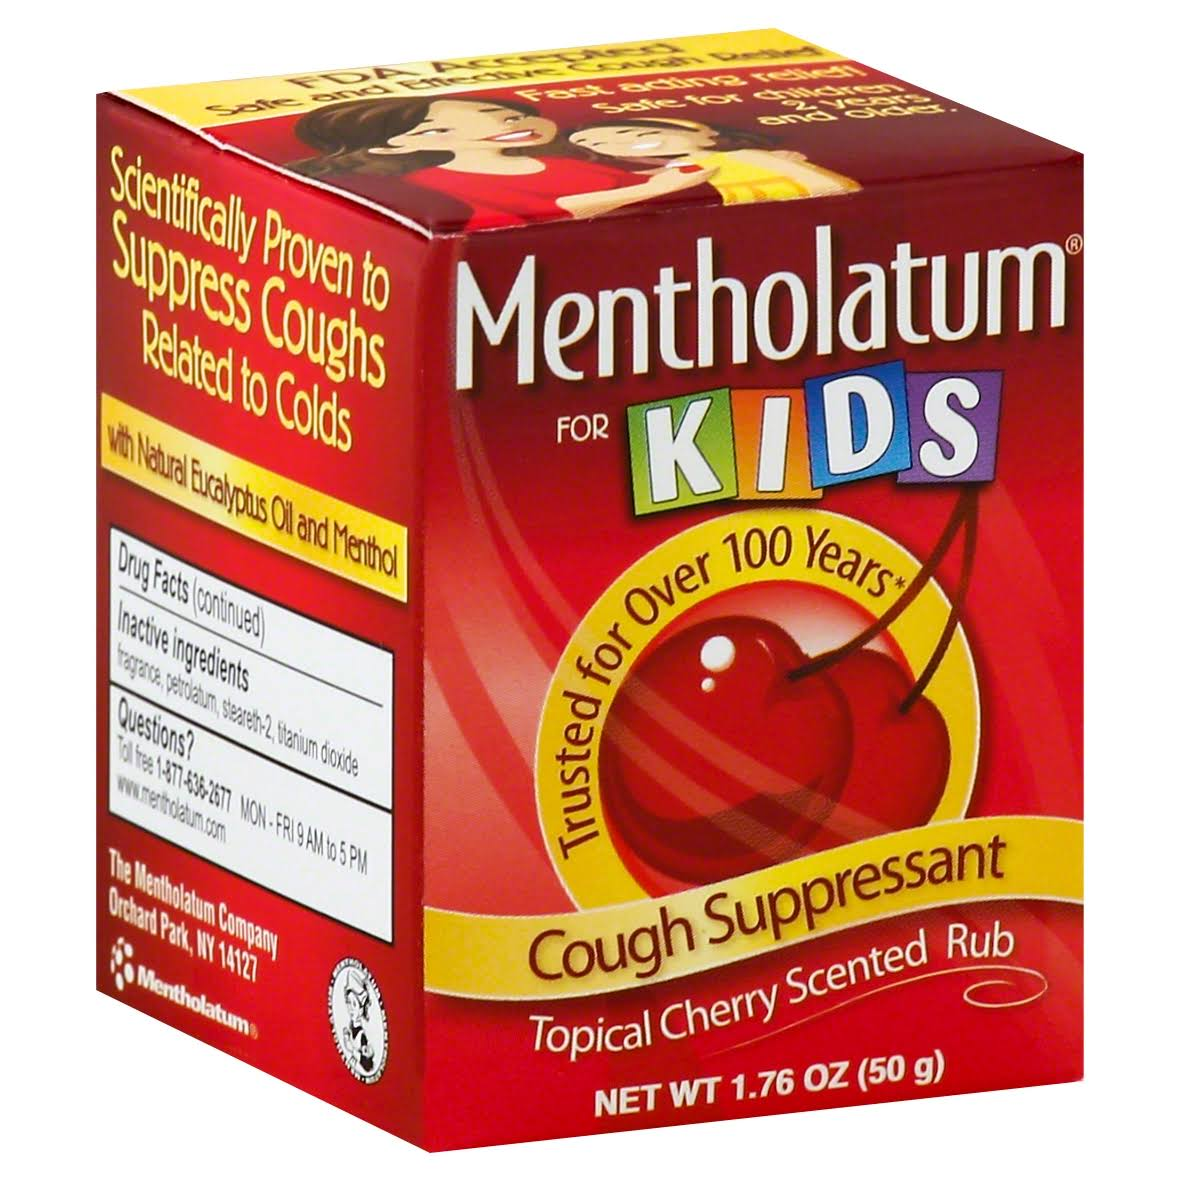 Mentholatum Chest Rub for Kids - 1.76oz, Cherry